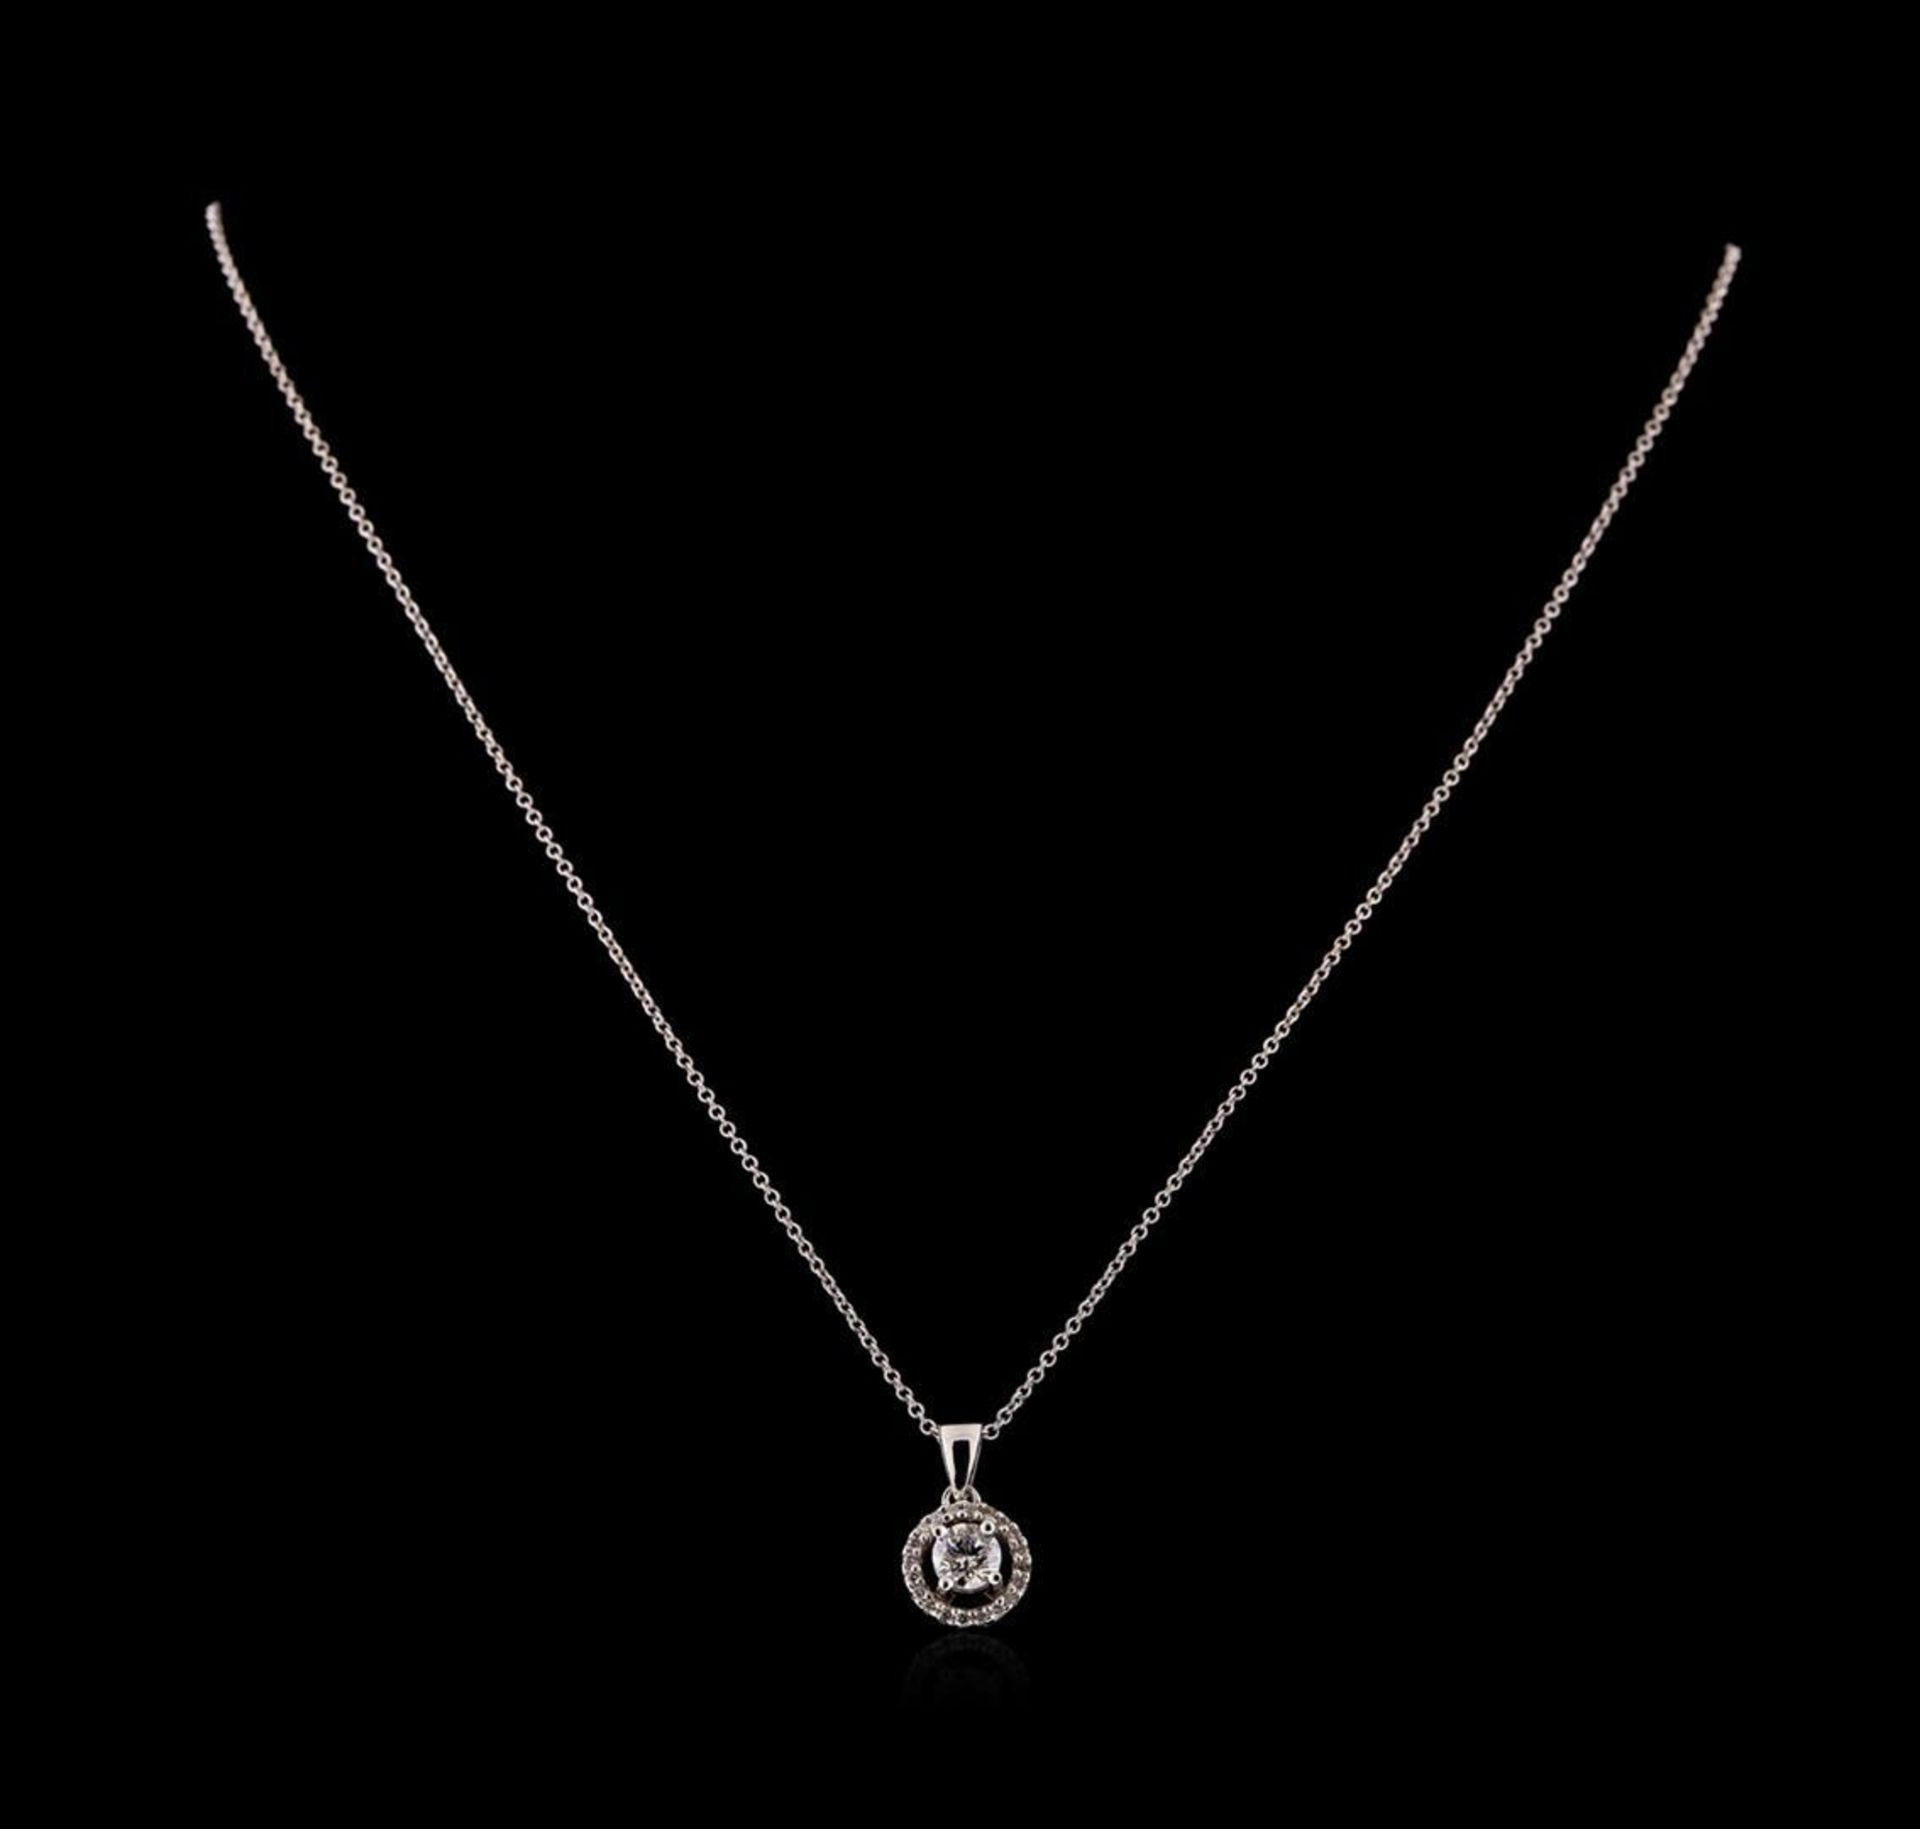 0.66 ctw Diamond Pendant With Chain - 14KT White Gold - Image 2 of 3